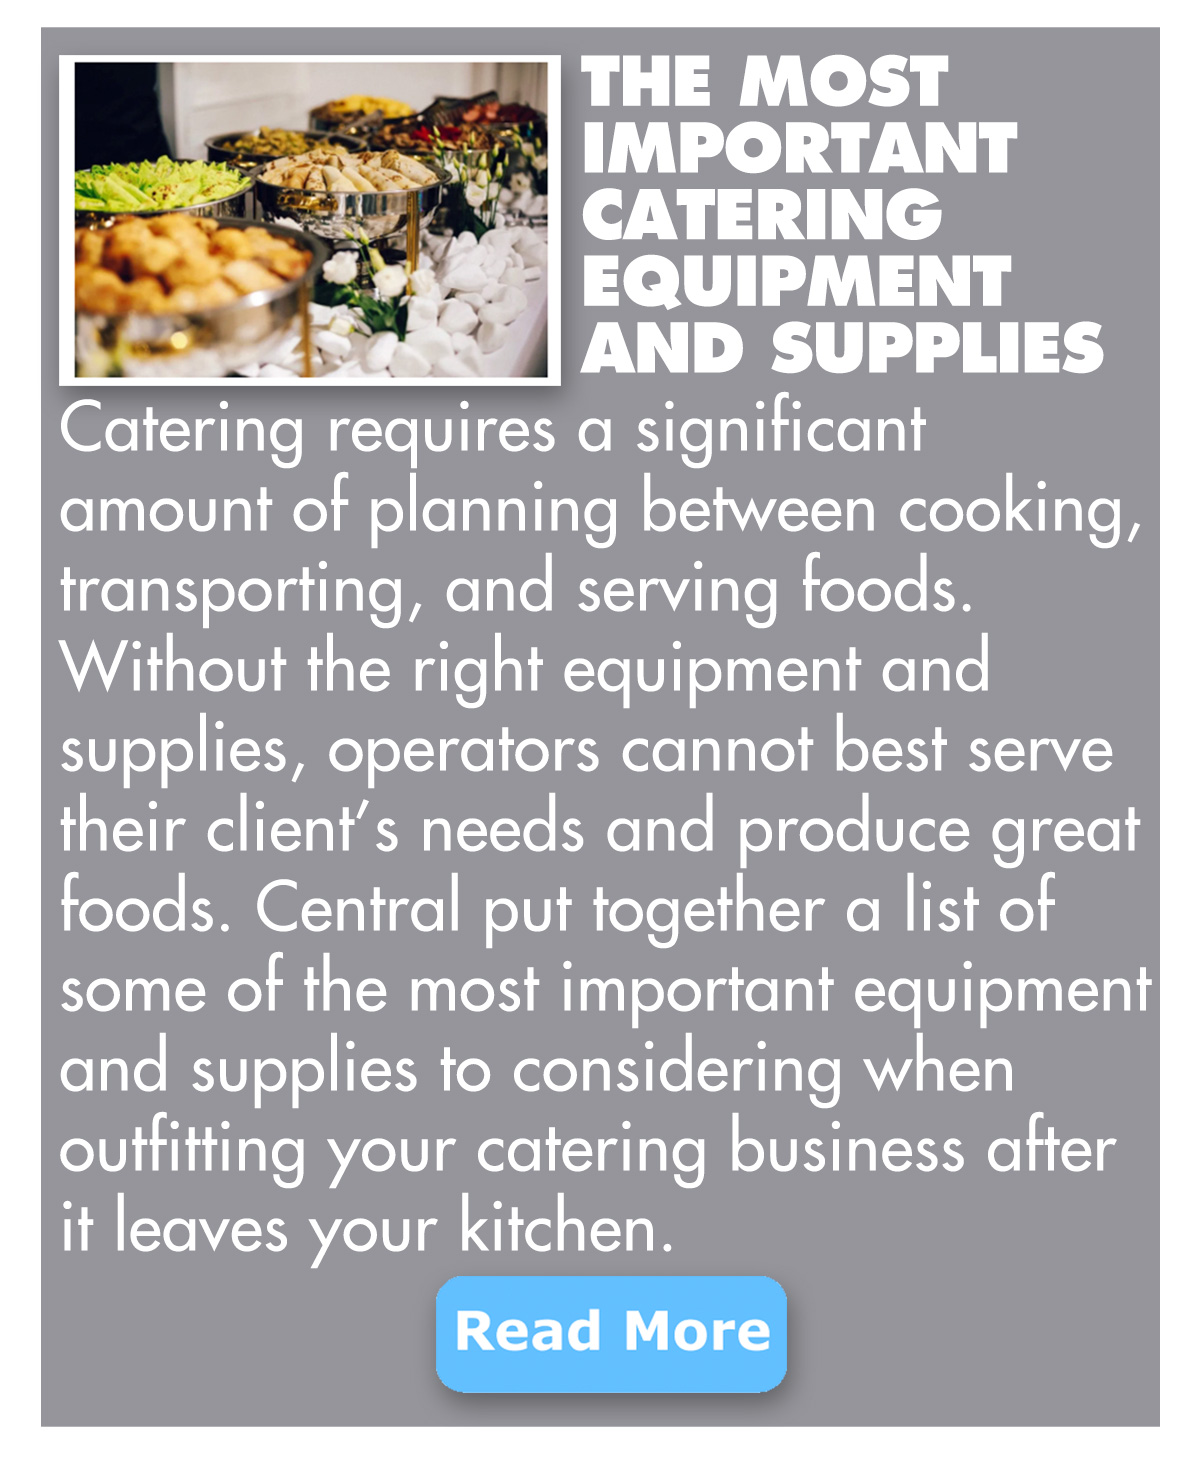 The most important catering equipment and supplies